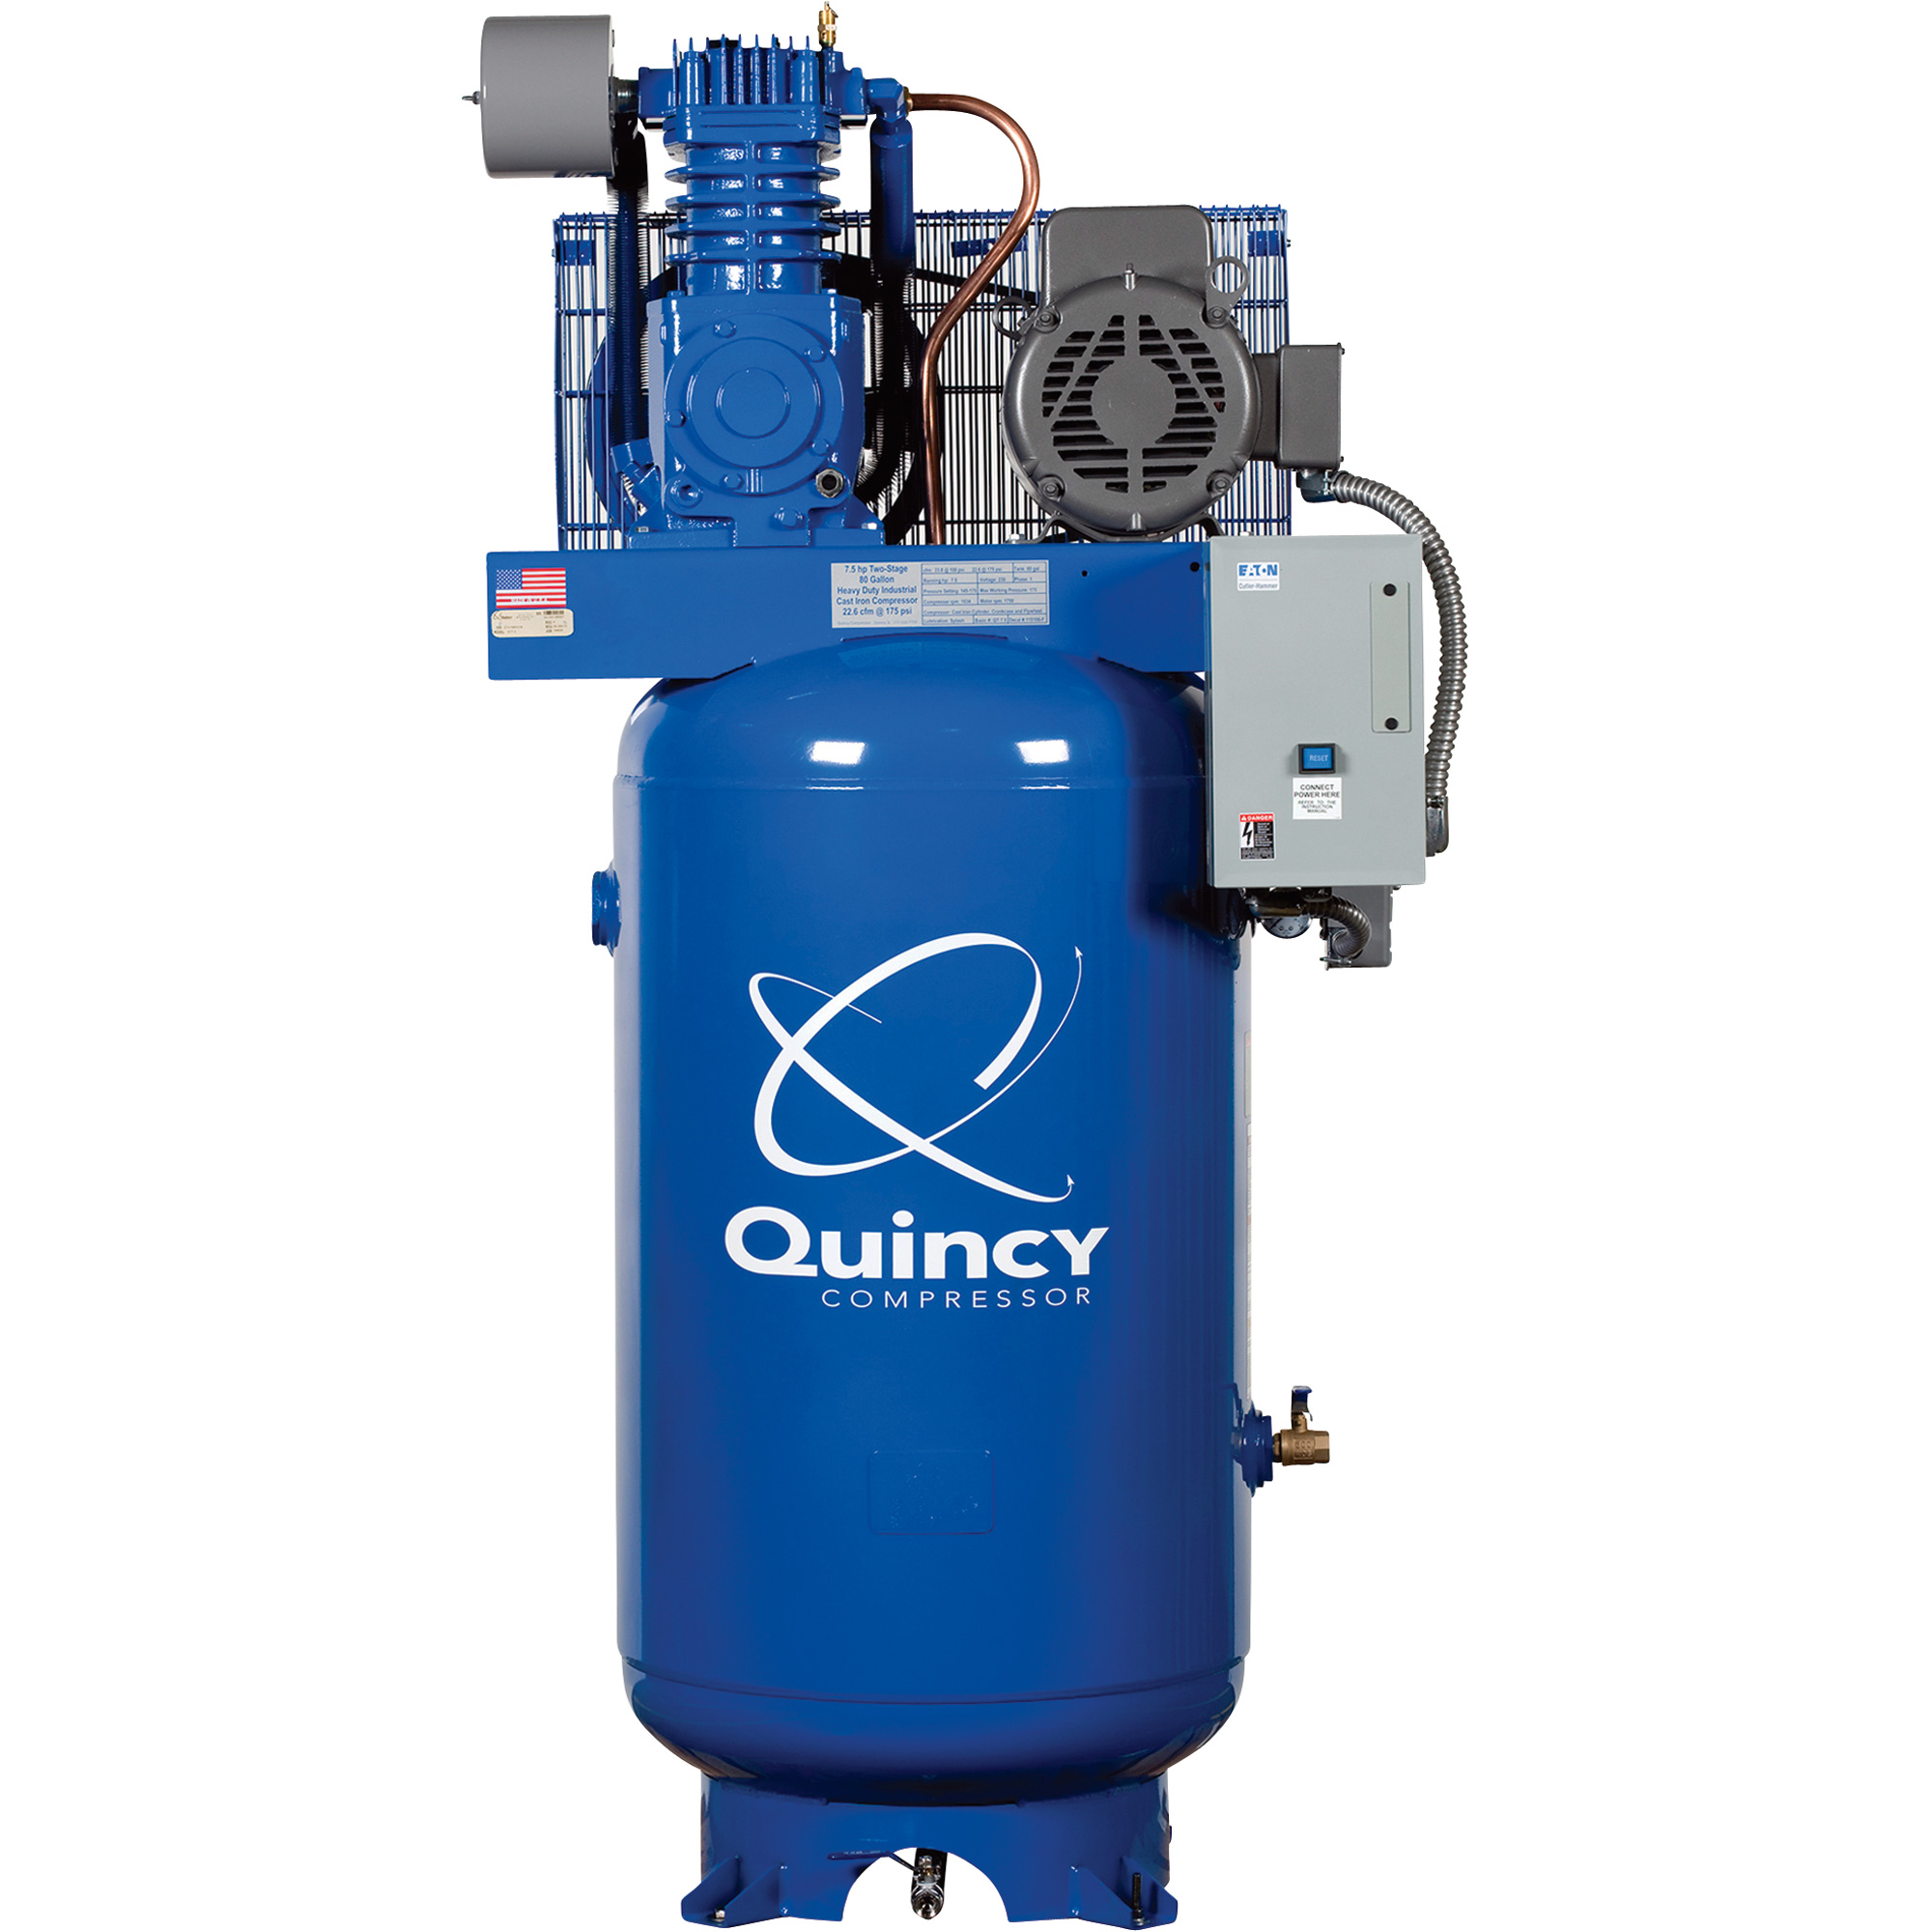 Quincy stationary engine driven pressure lube pro qp 5 5hp for 5hp air compressor motor starter